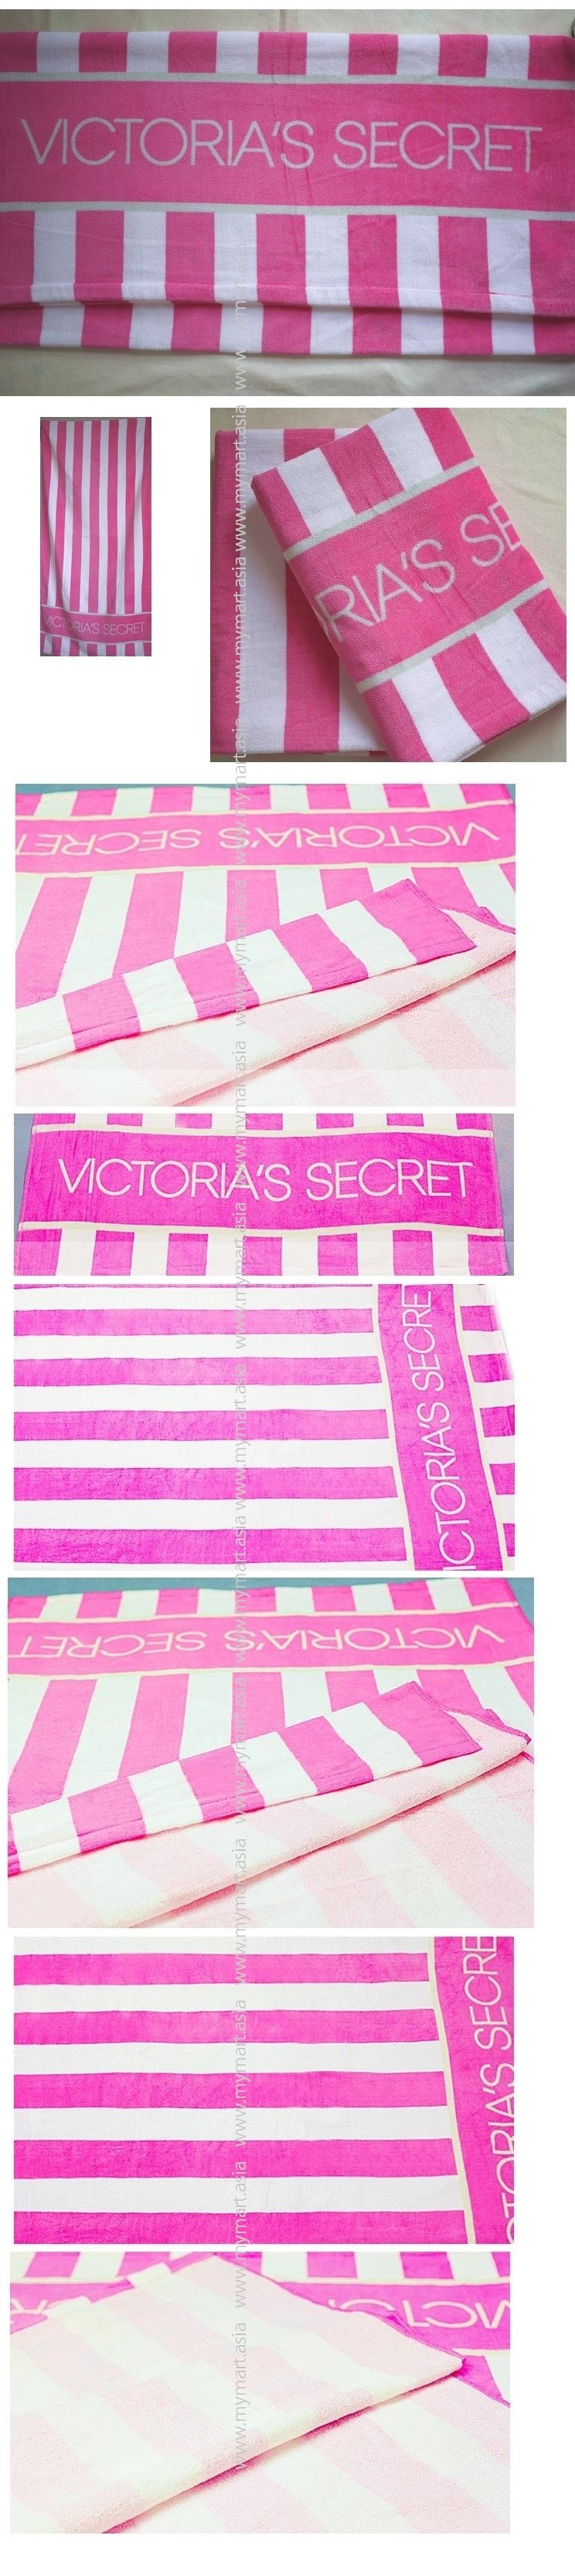 Limited Edition Victoria's Secret Pink Towel